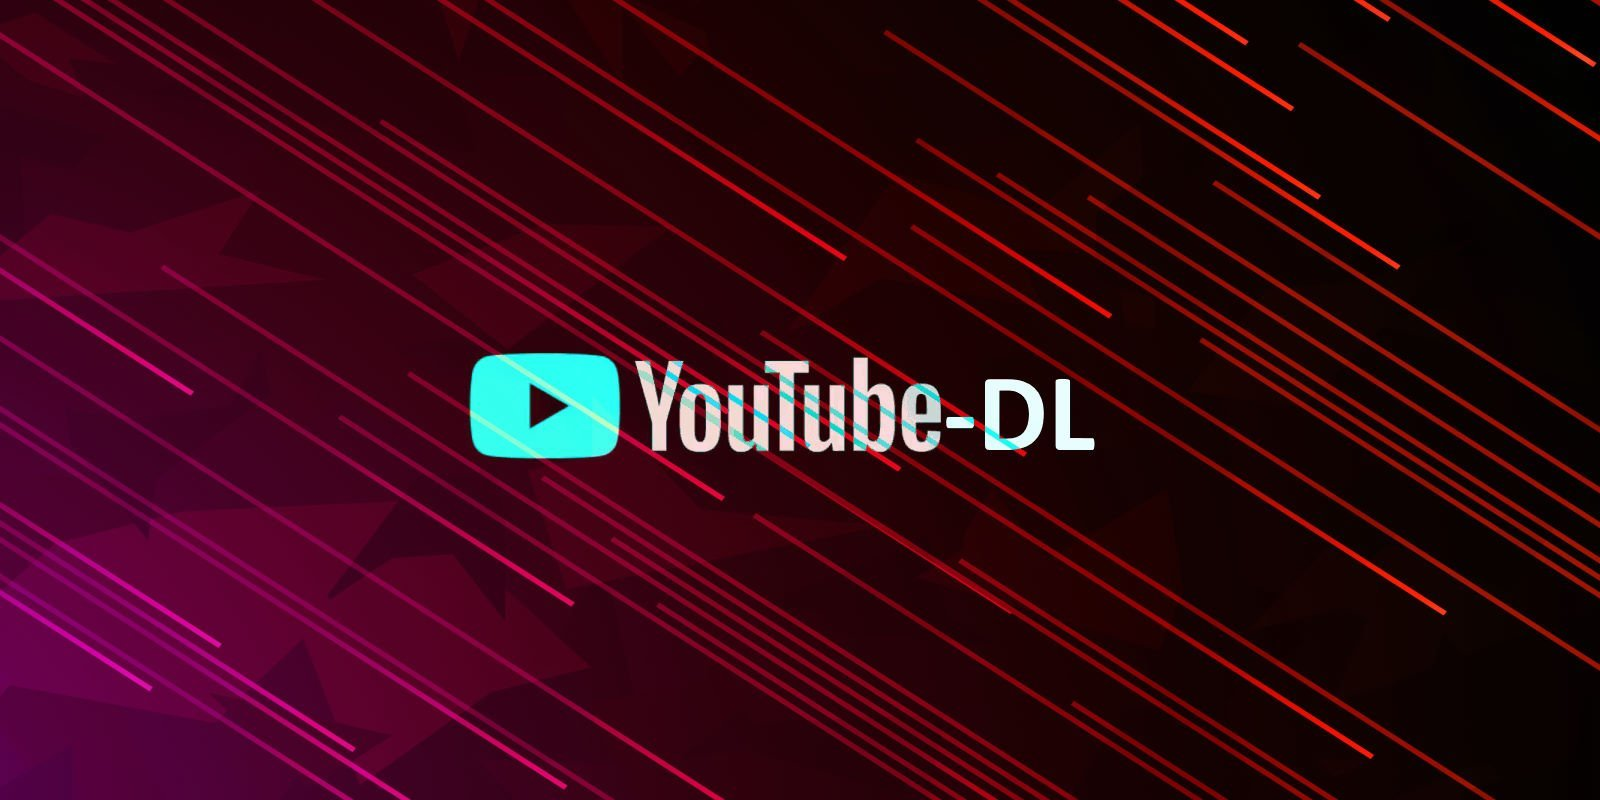 YouTube-dl Removed From GitHub After RIAA DMCA Notice